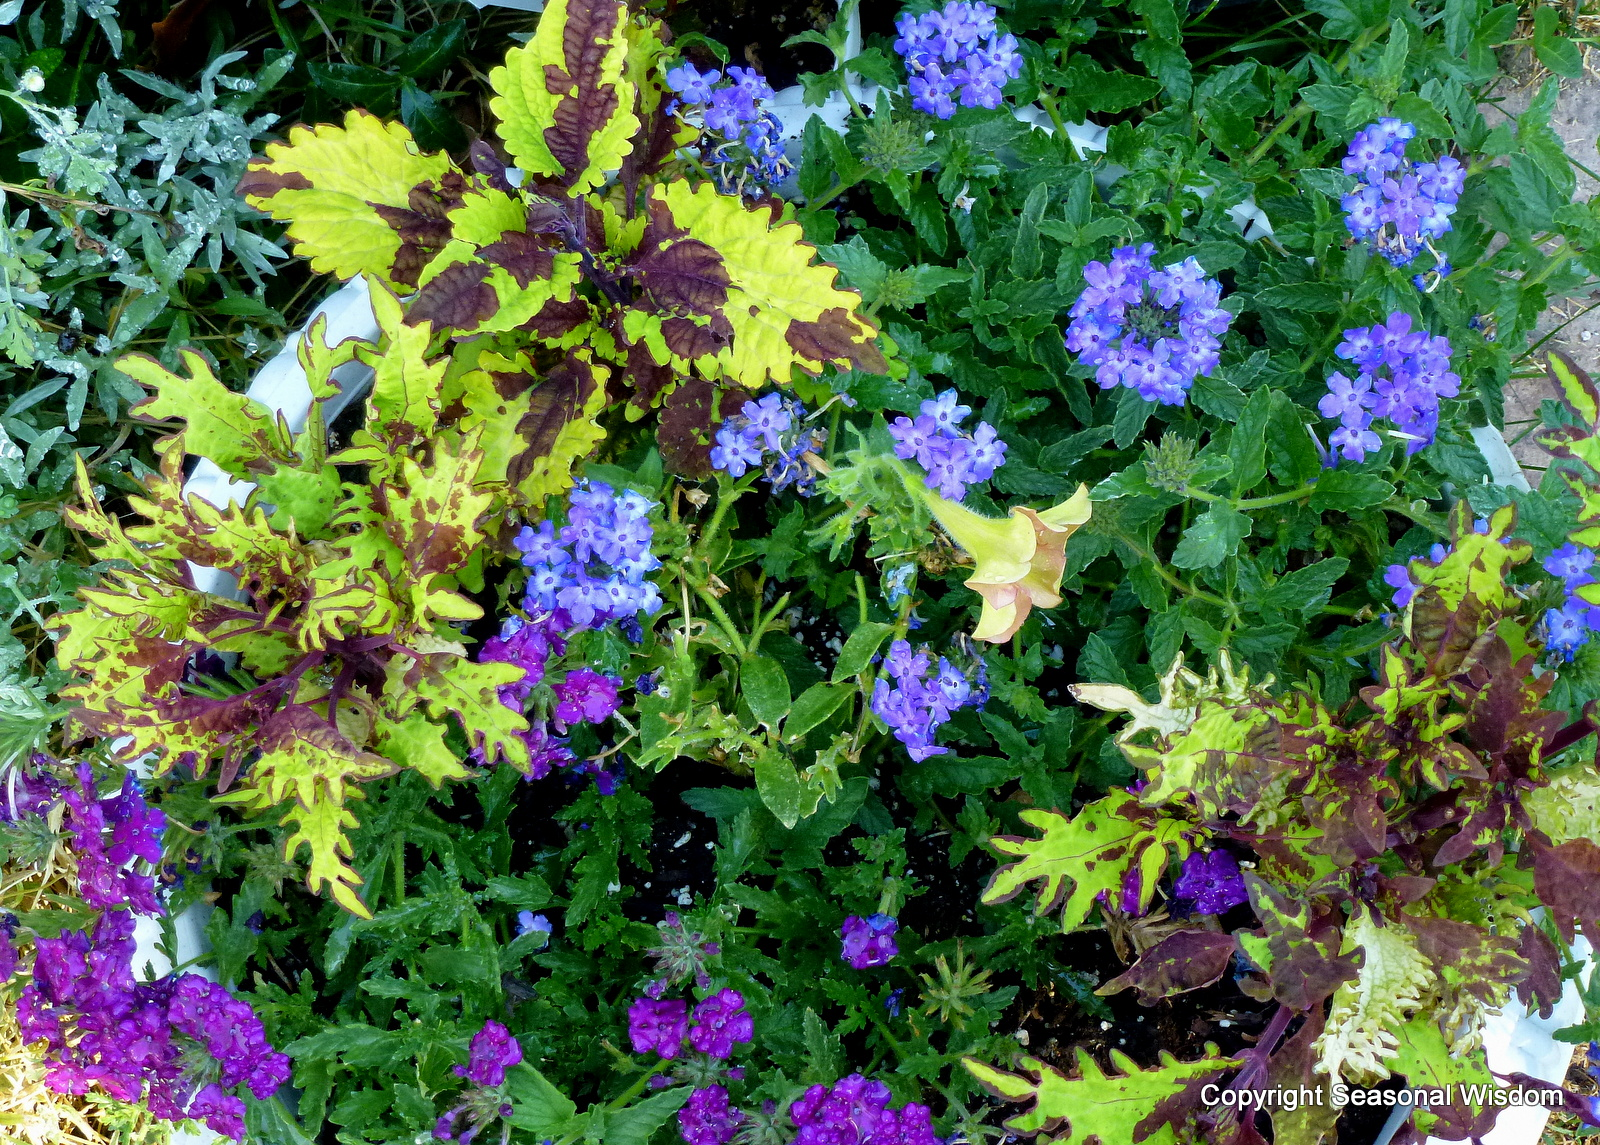 Producers Plants http://www.seasonalwisdom.com/2012/07/colorful-coleus-and-other-new-container-plants/